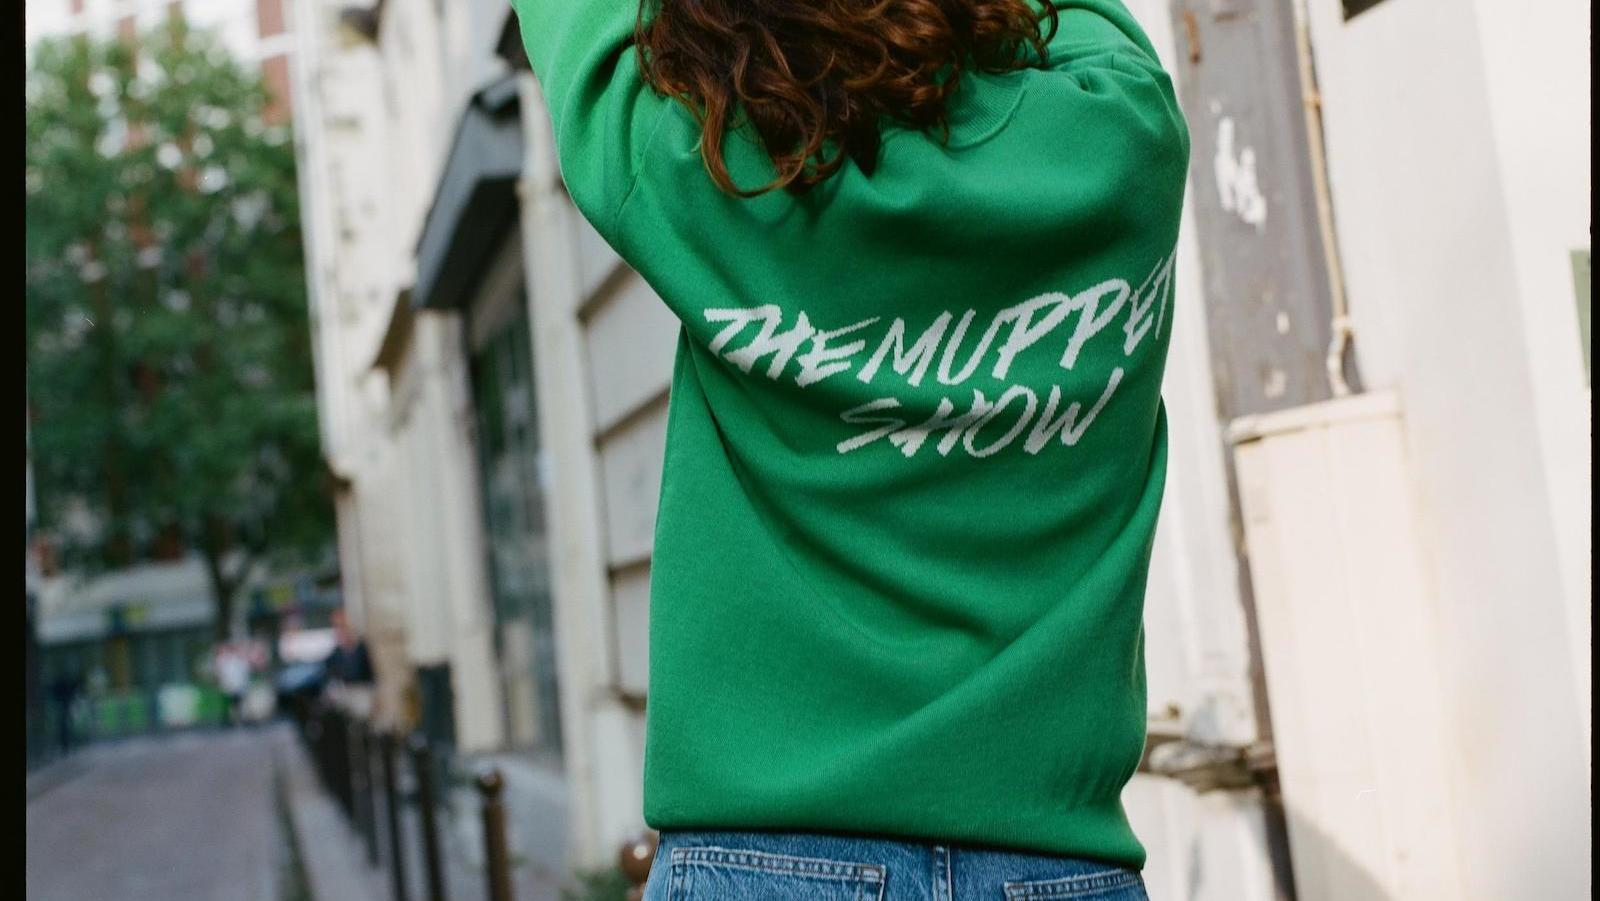 Kermit the Frog Is the Star of a New Collection from French Fashion House Sandro